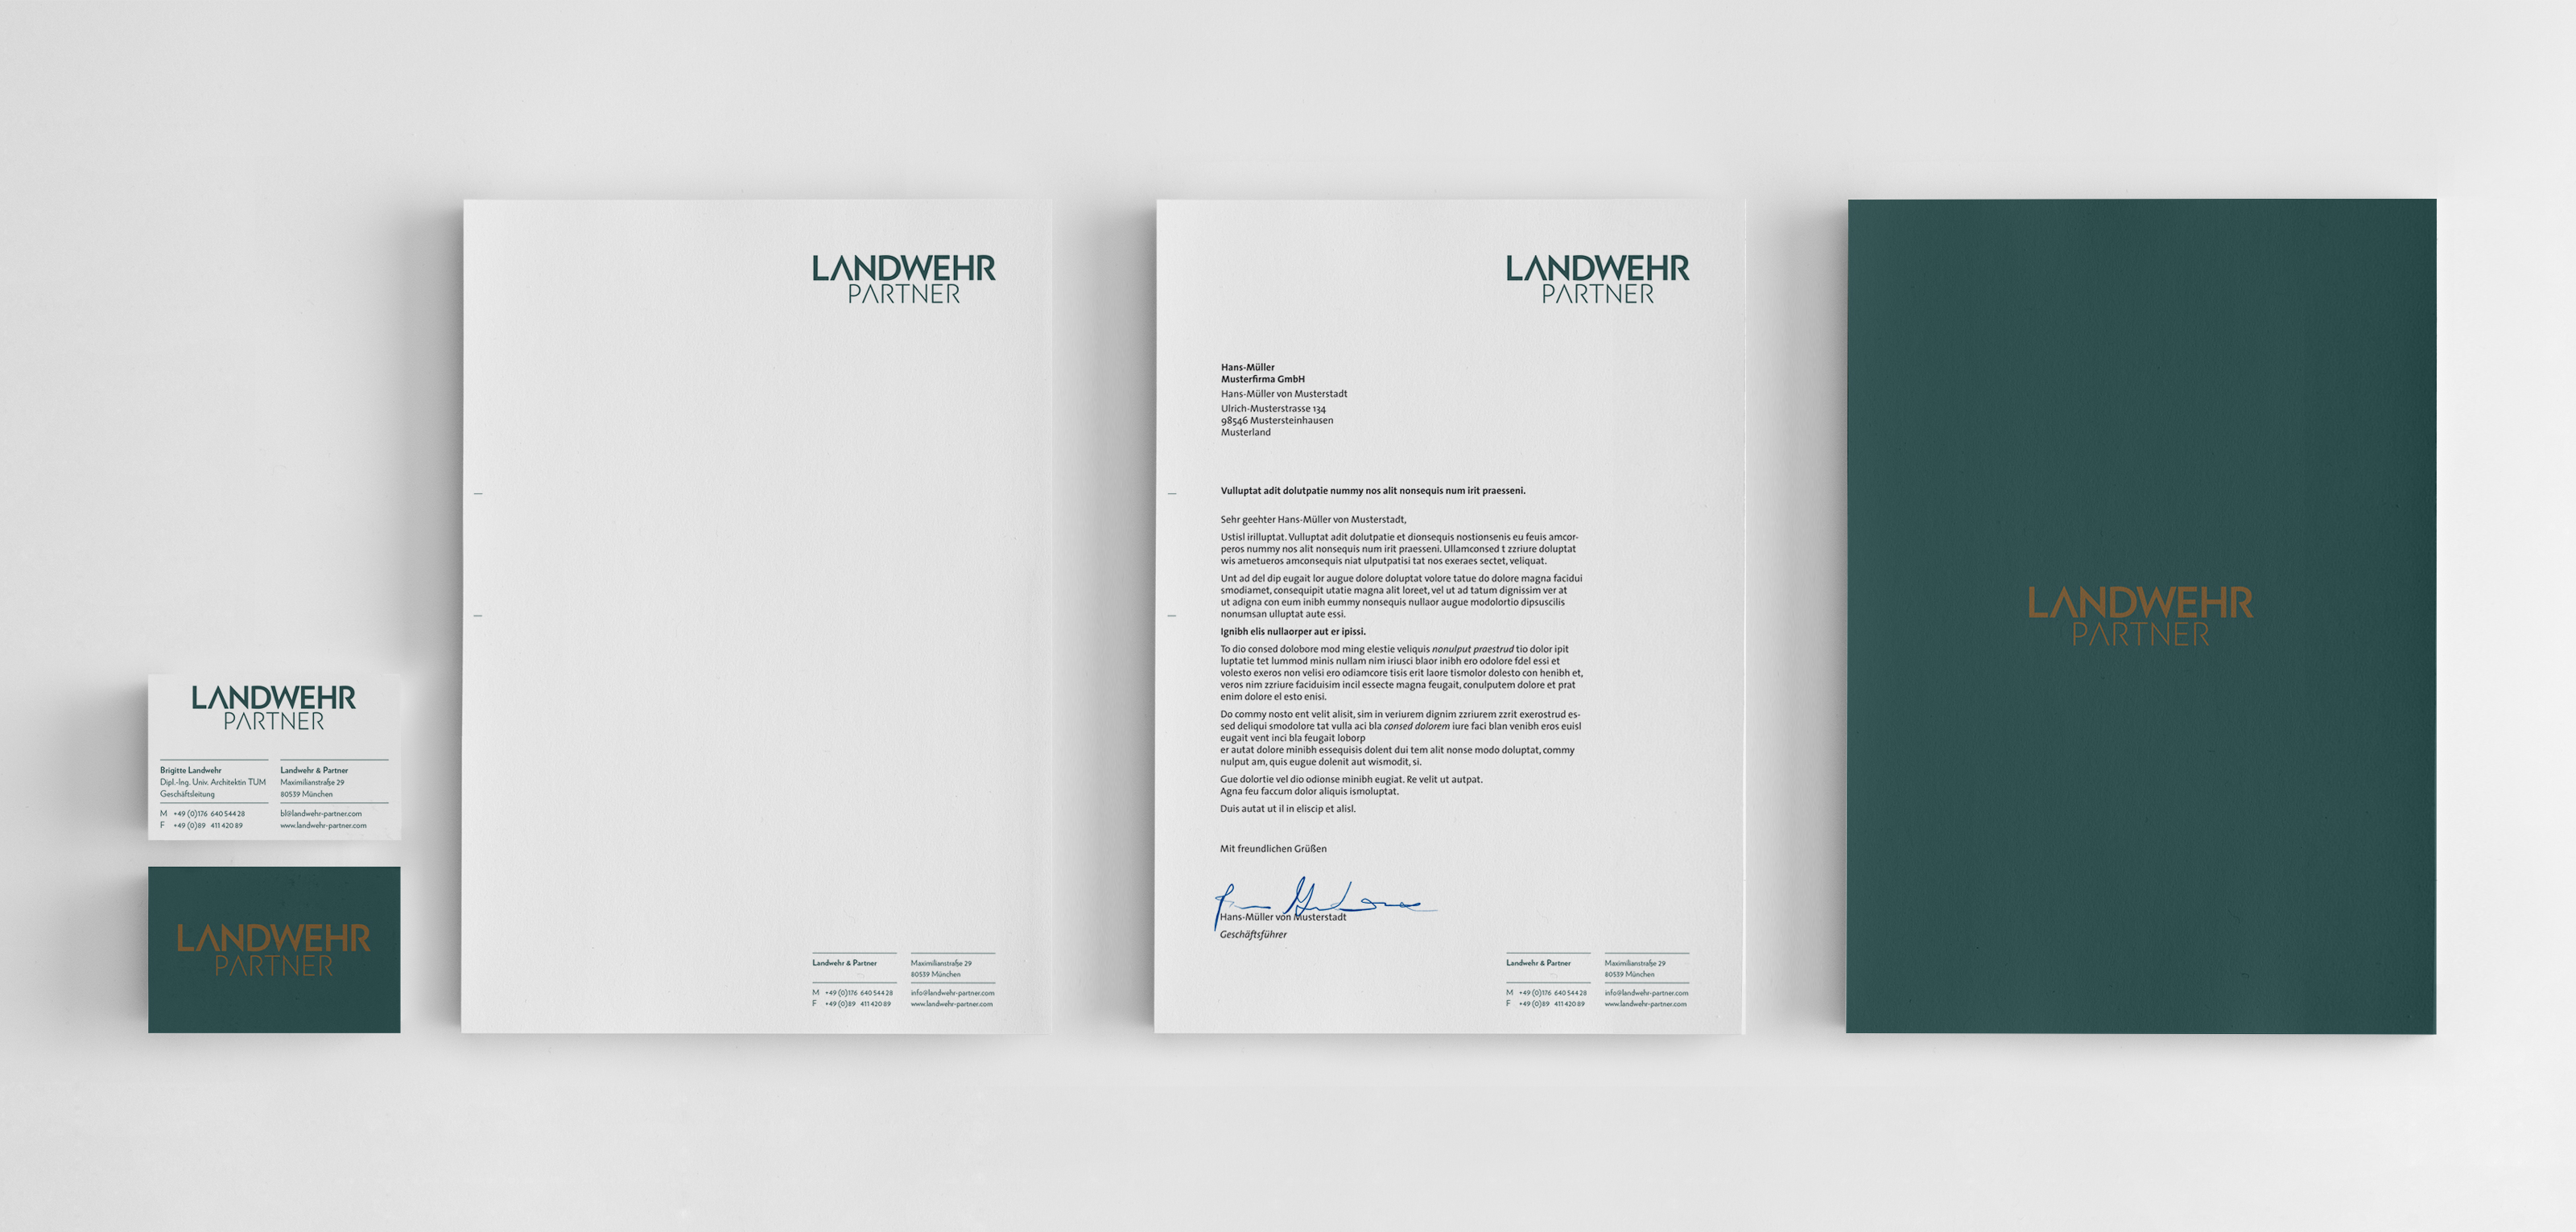 Landwehr-Partner_CorporateDesign.jpg?fit=3200%2C1531